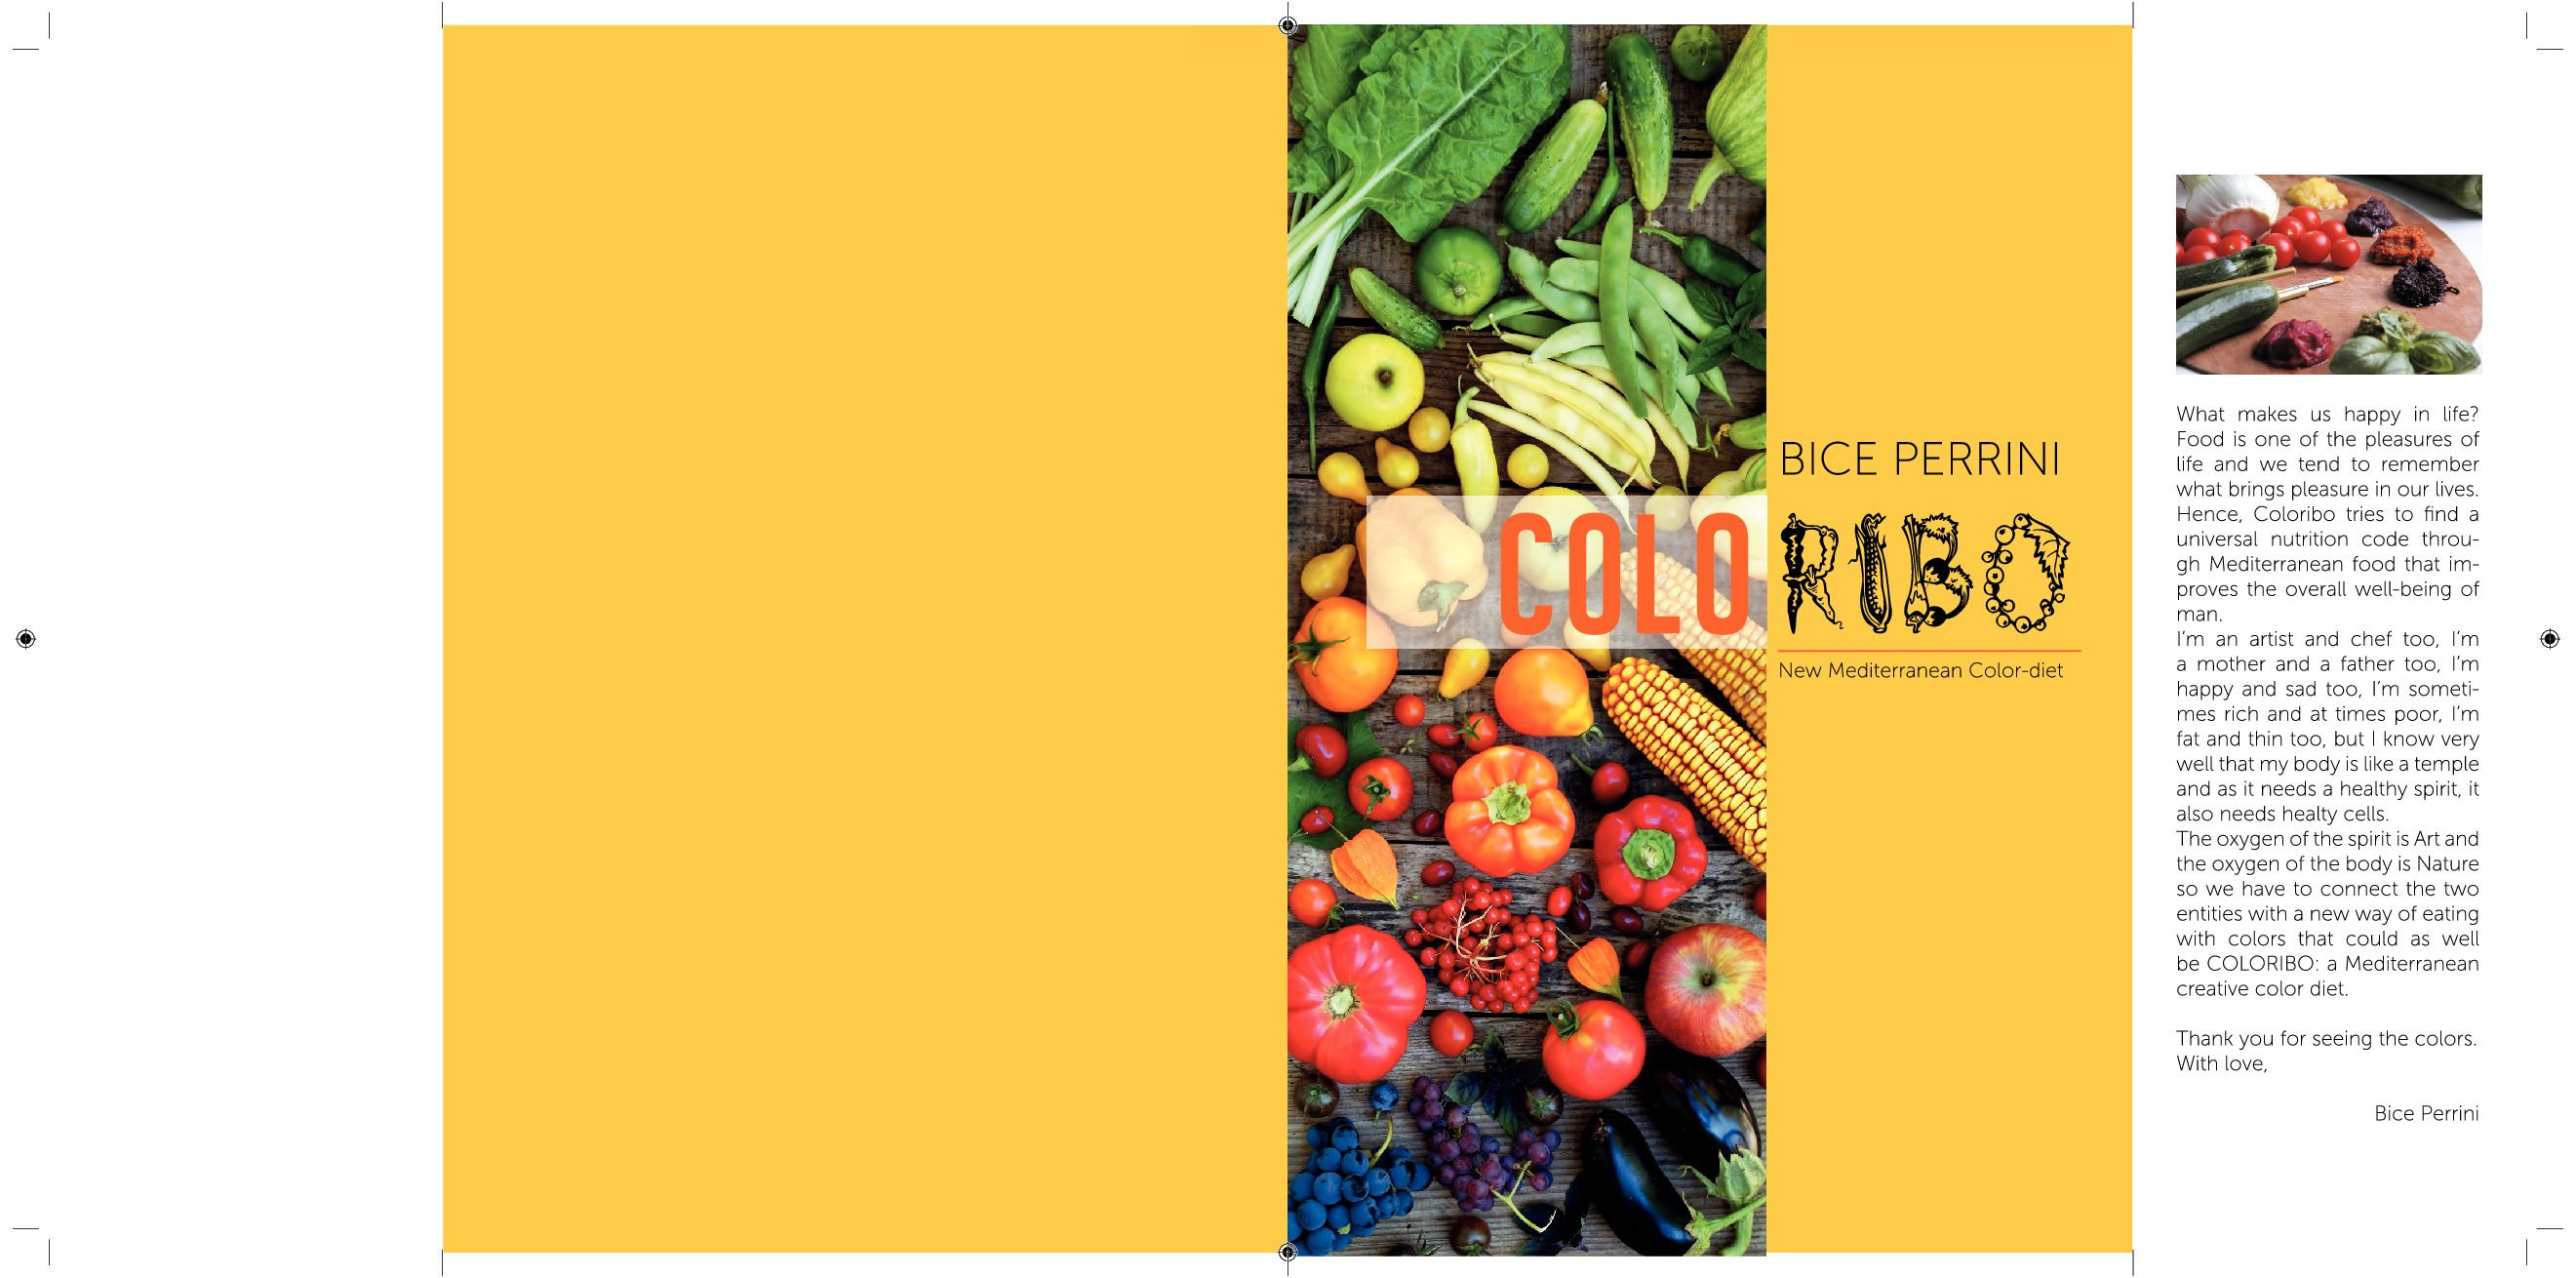 Coloribo book: New Mediterranean Color-diet